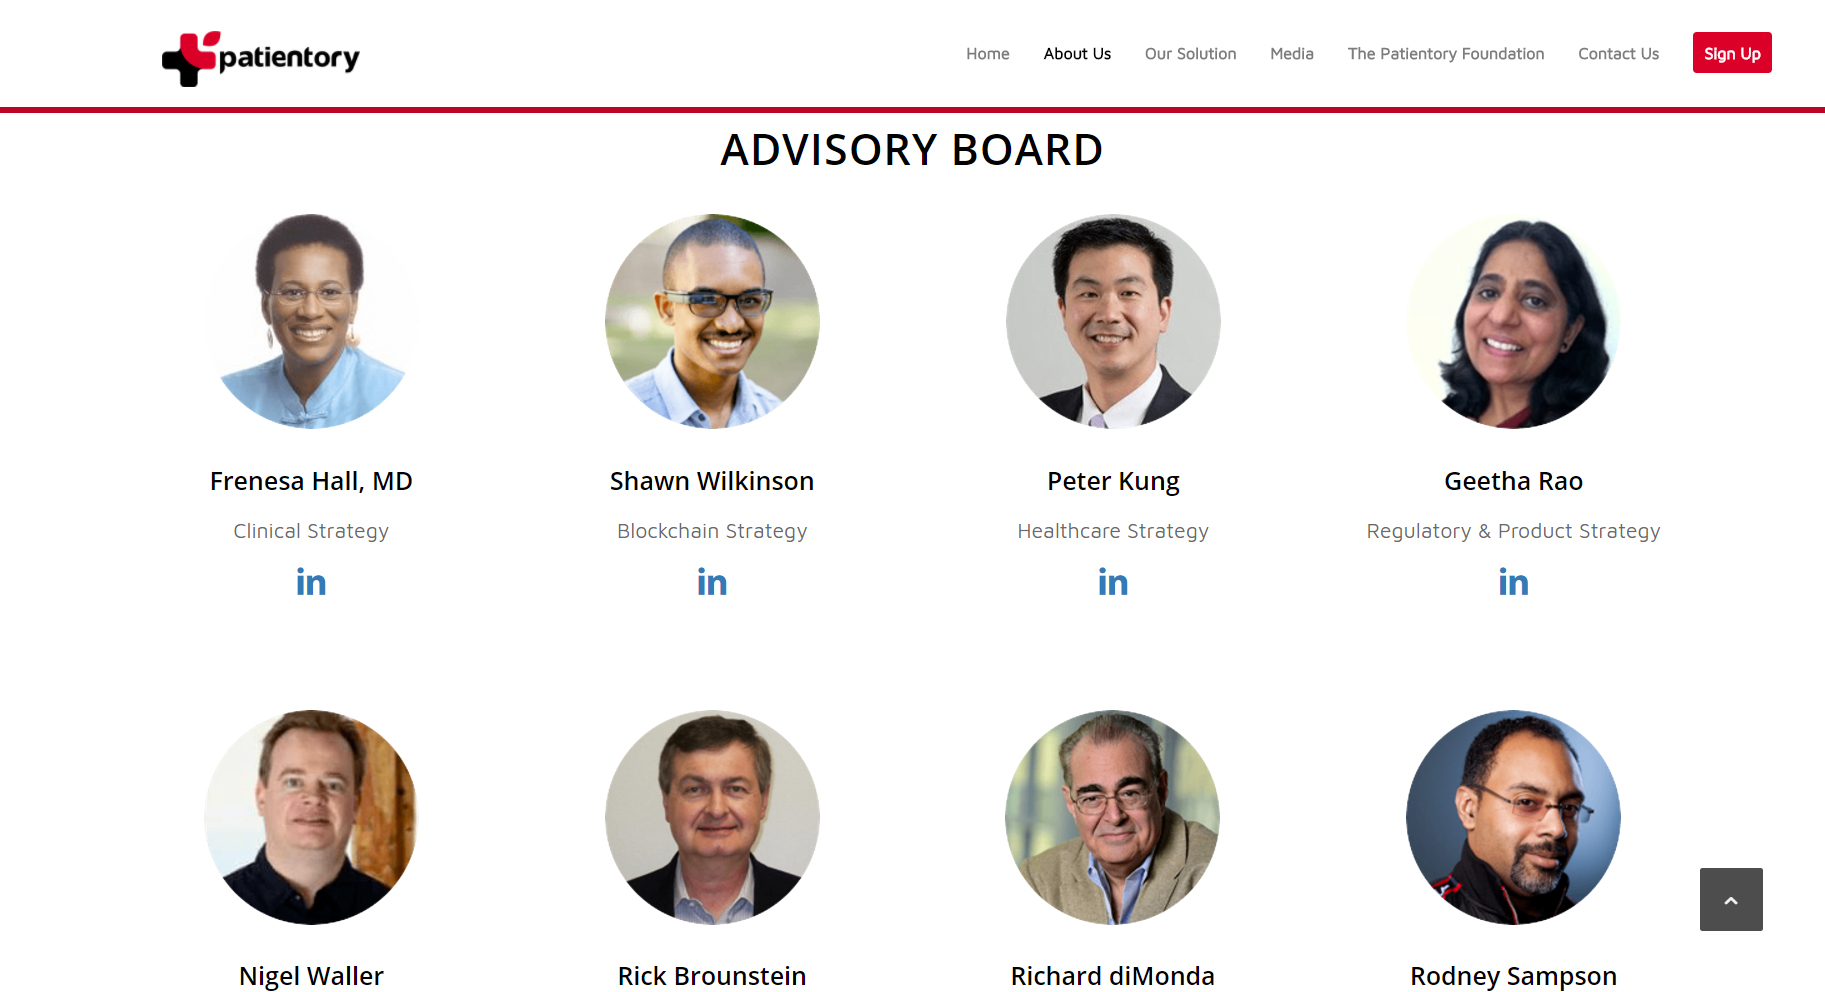 remhai-patientory-built-website-advisory